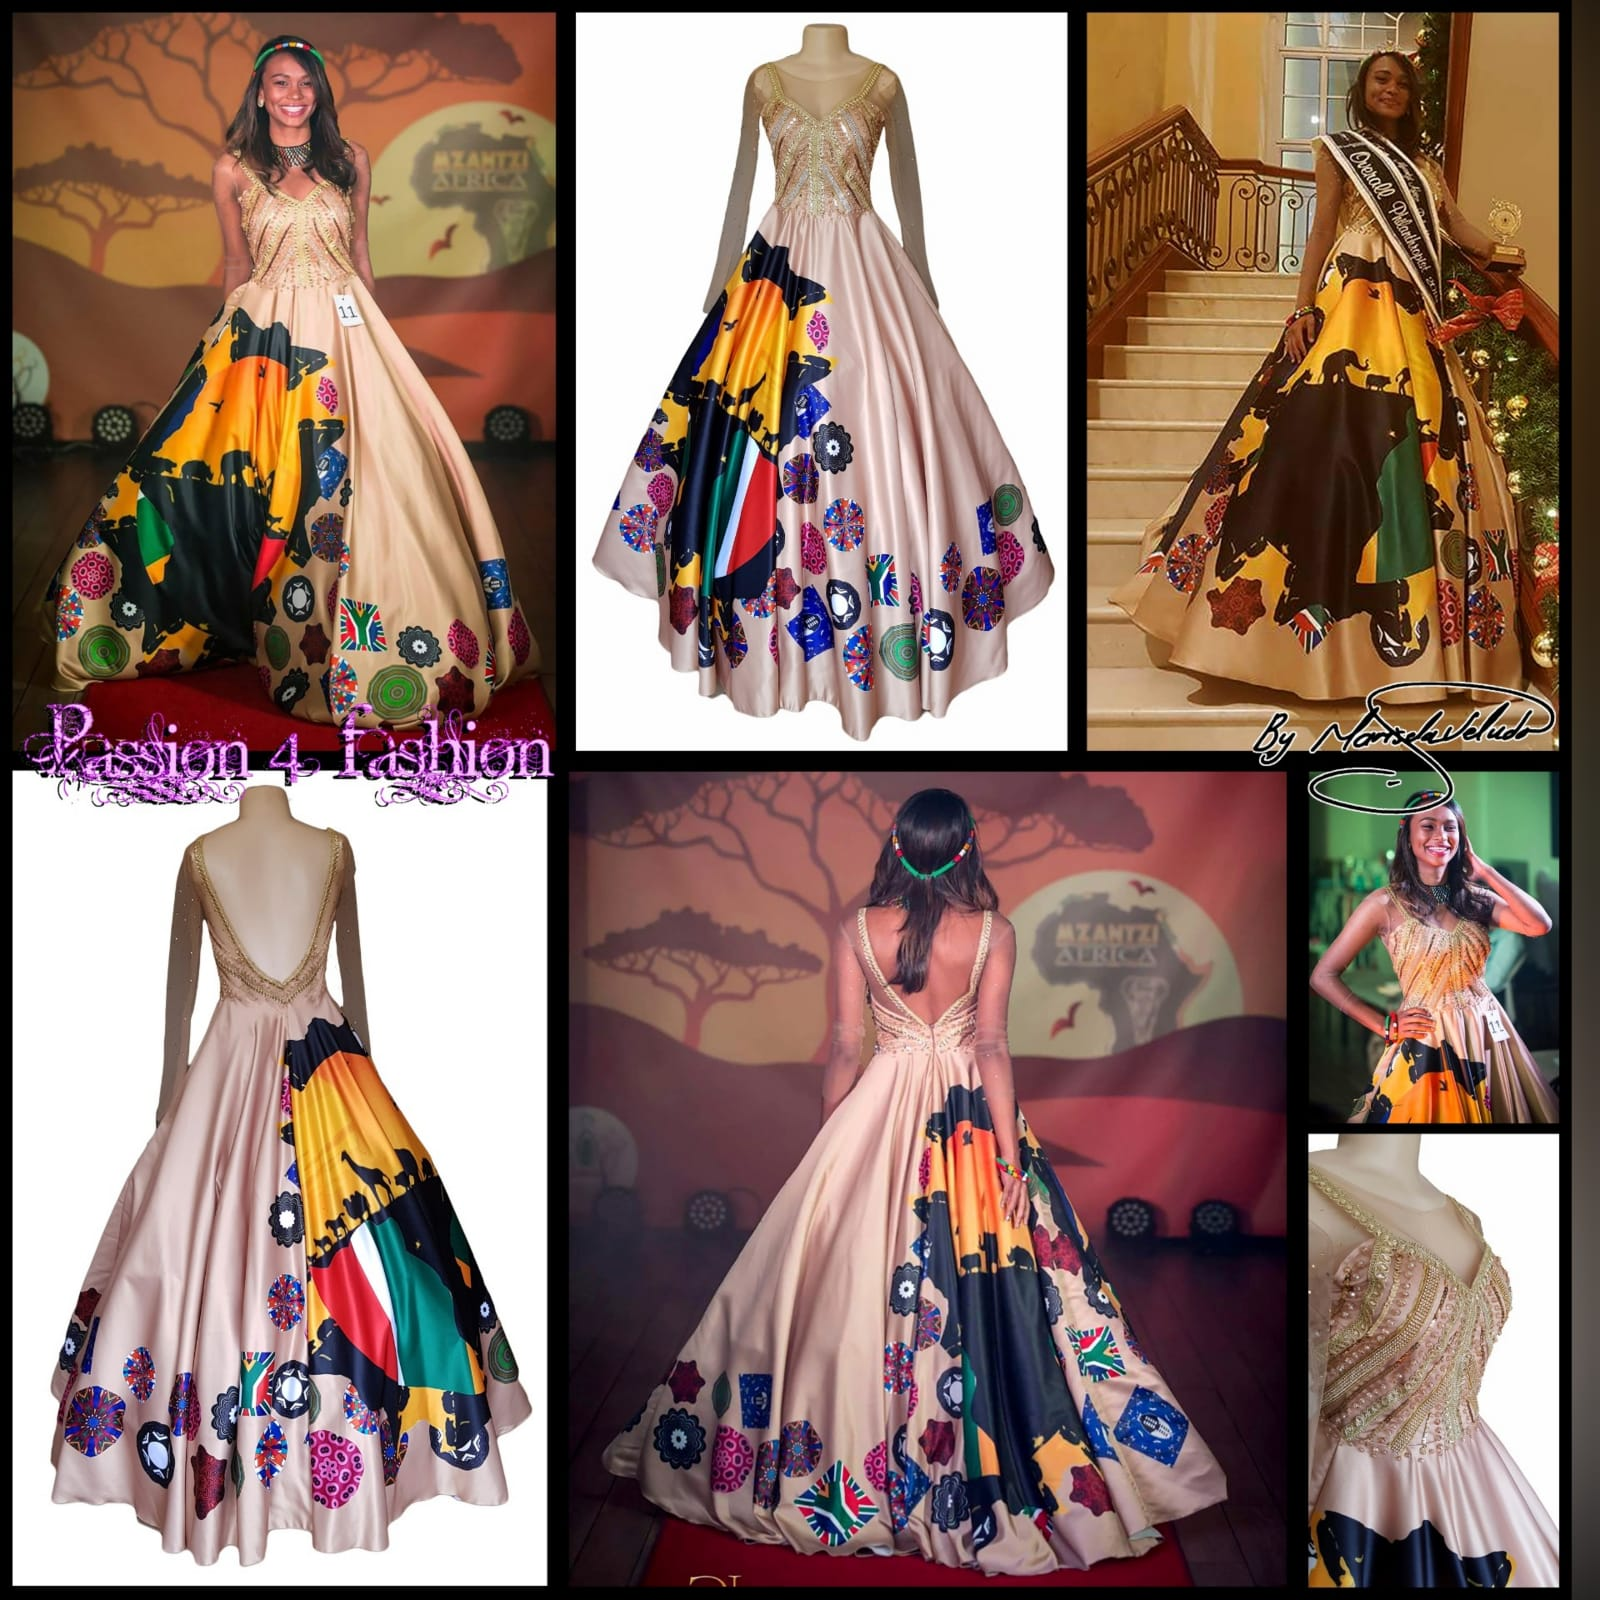 Gold ball gown for beauty pageant 8 gold ball gown for beauty pageant, bodice detailed in gold beadwork with sheer long sleeves, with a v open back. With traditional kaleidoscope print